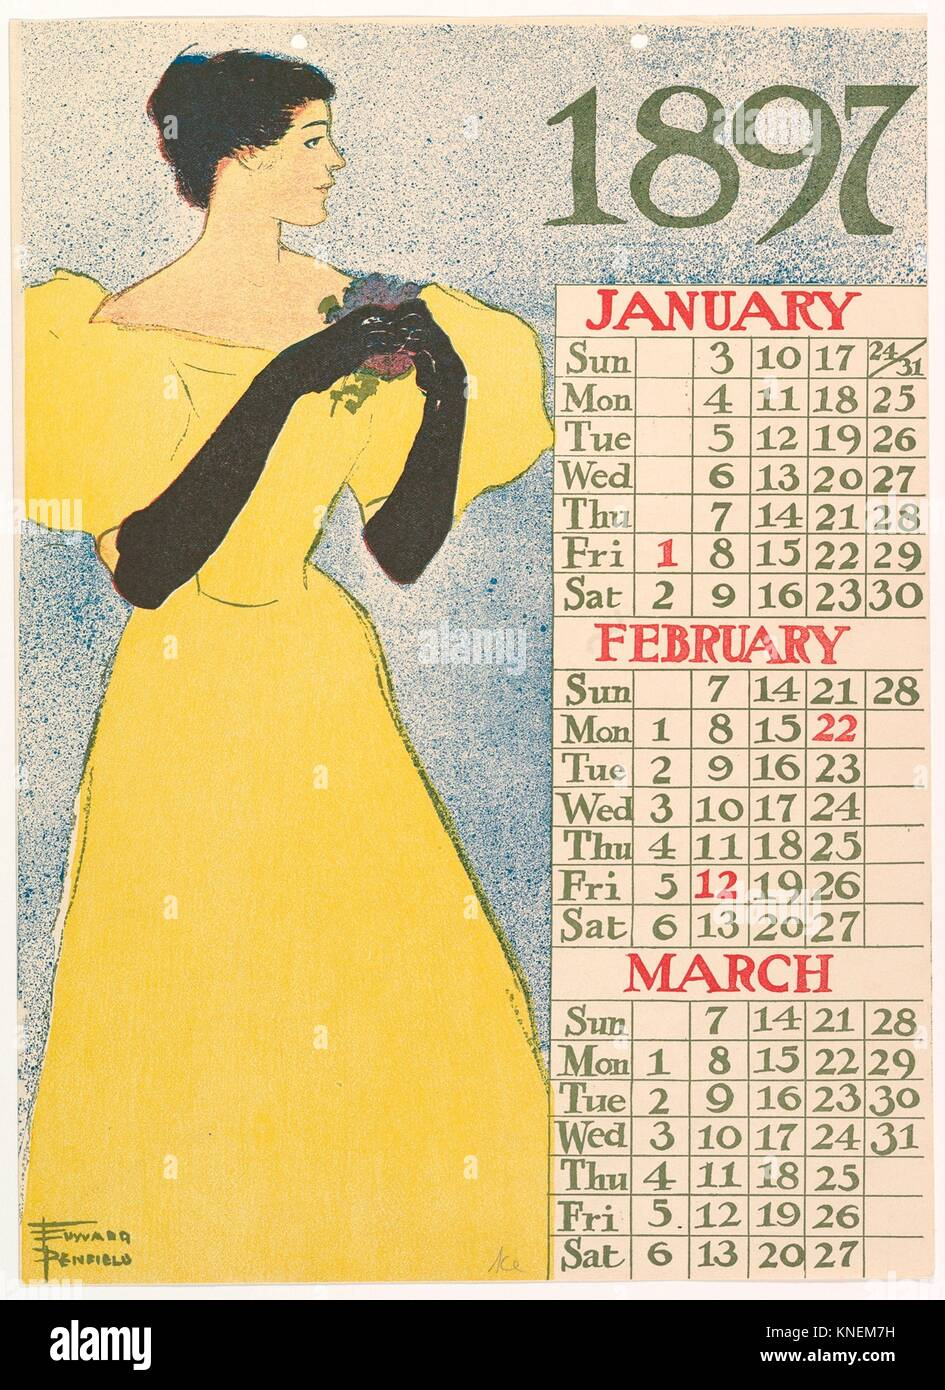 January, February, March, 1897. Artist: Edward Penfield (American, Brooklyn, New York 1866-1925 Beacon, New York); - Stock Image